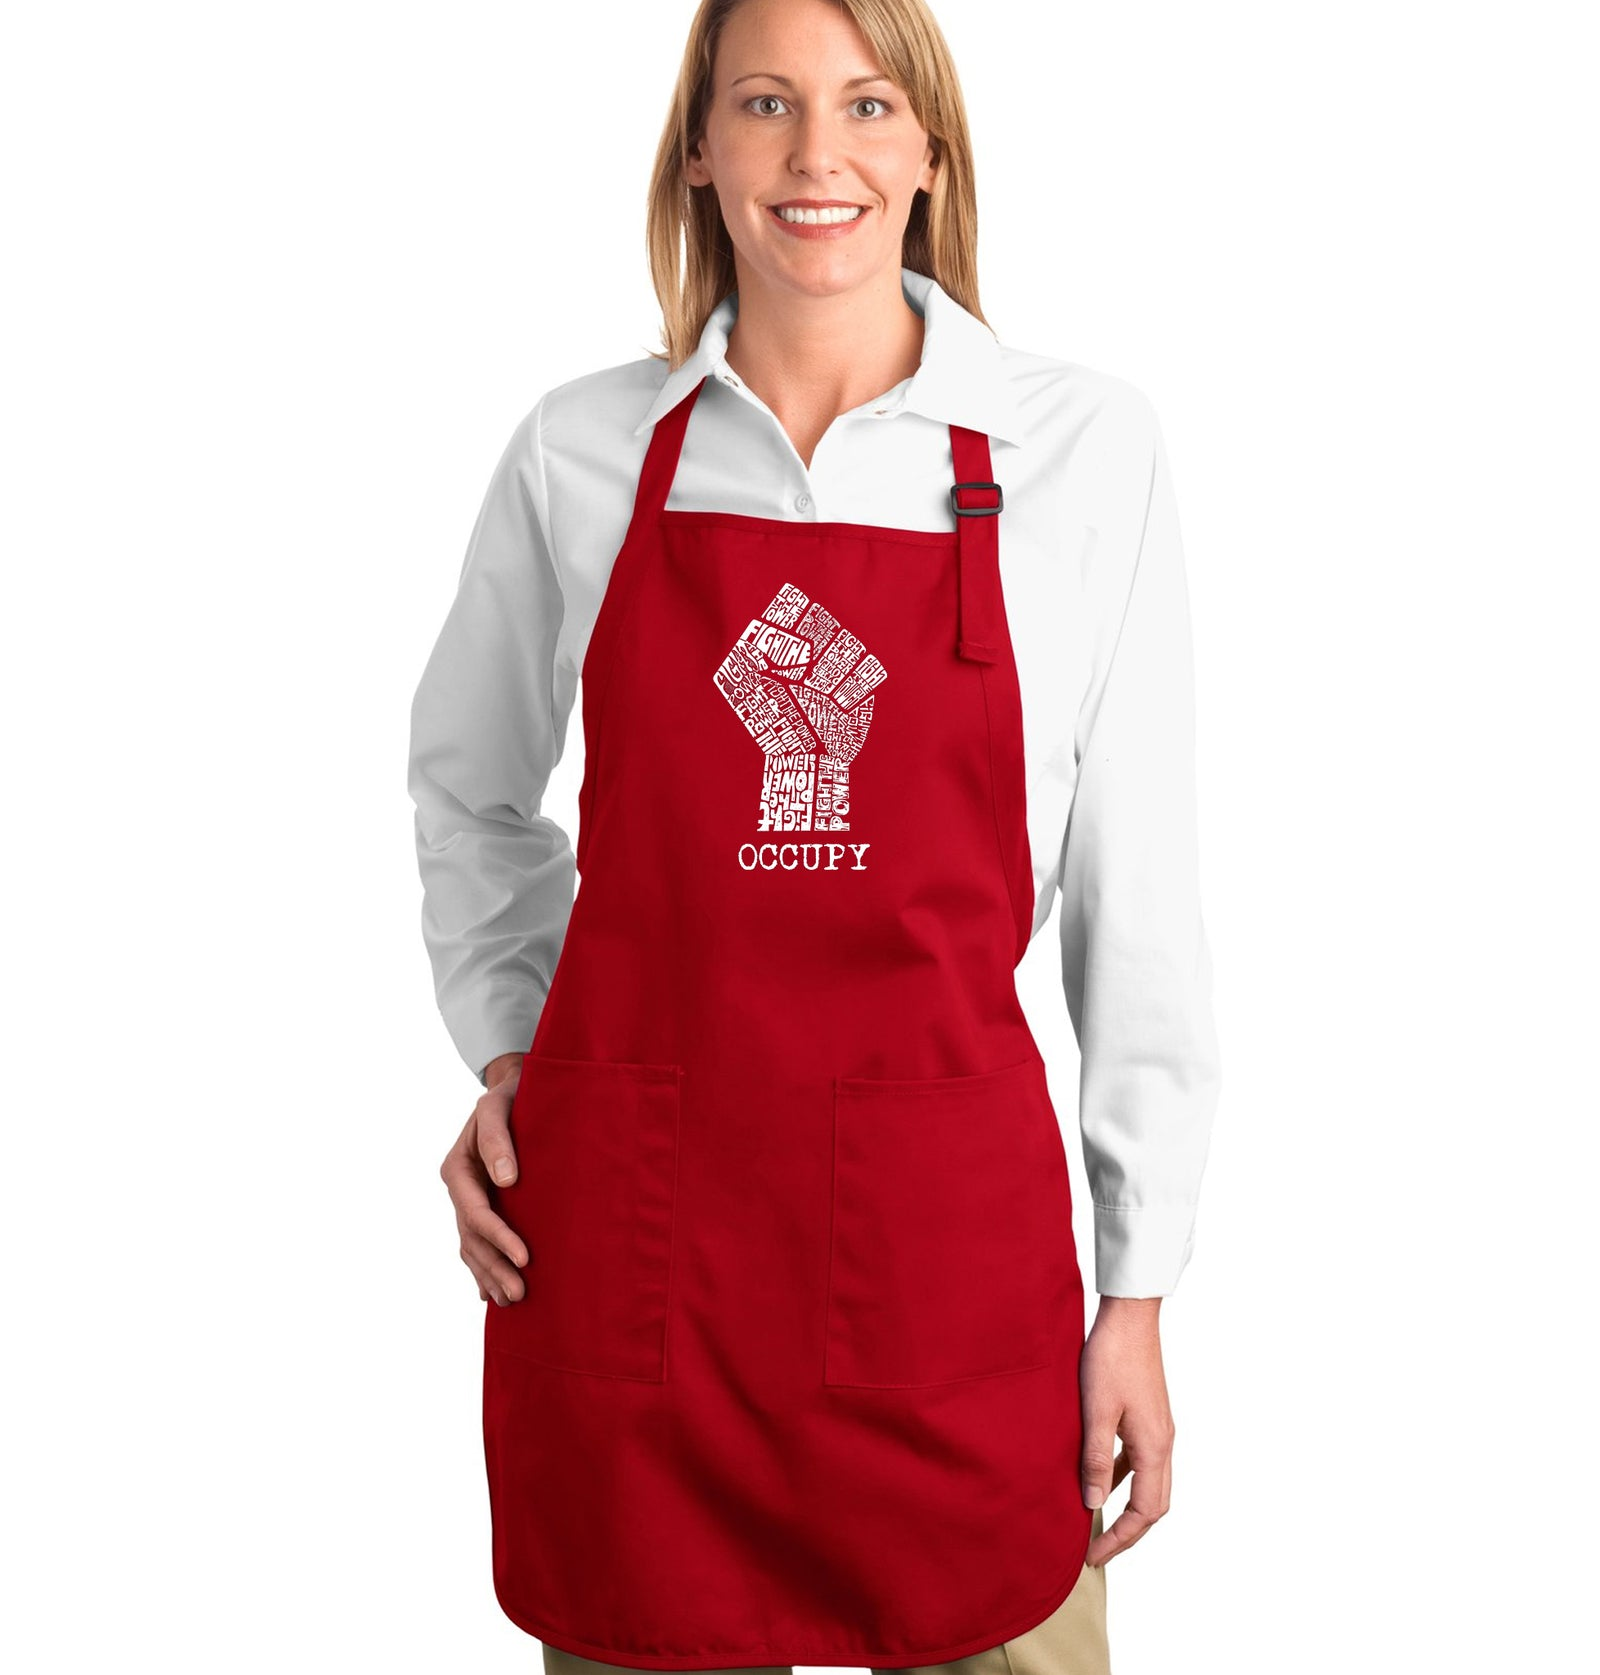 Full Length Apron - OCCUPY WALL STREET - FIGHT THE POWER